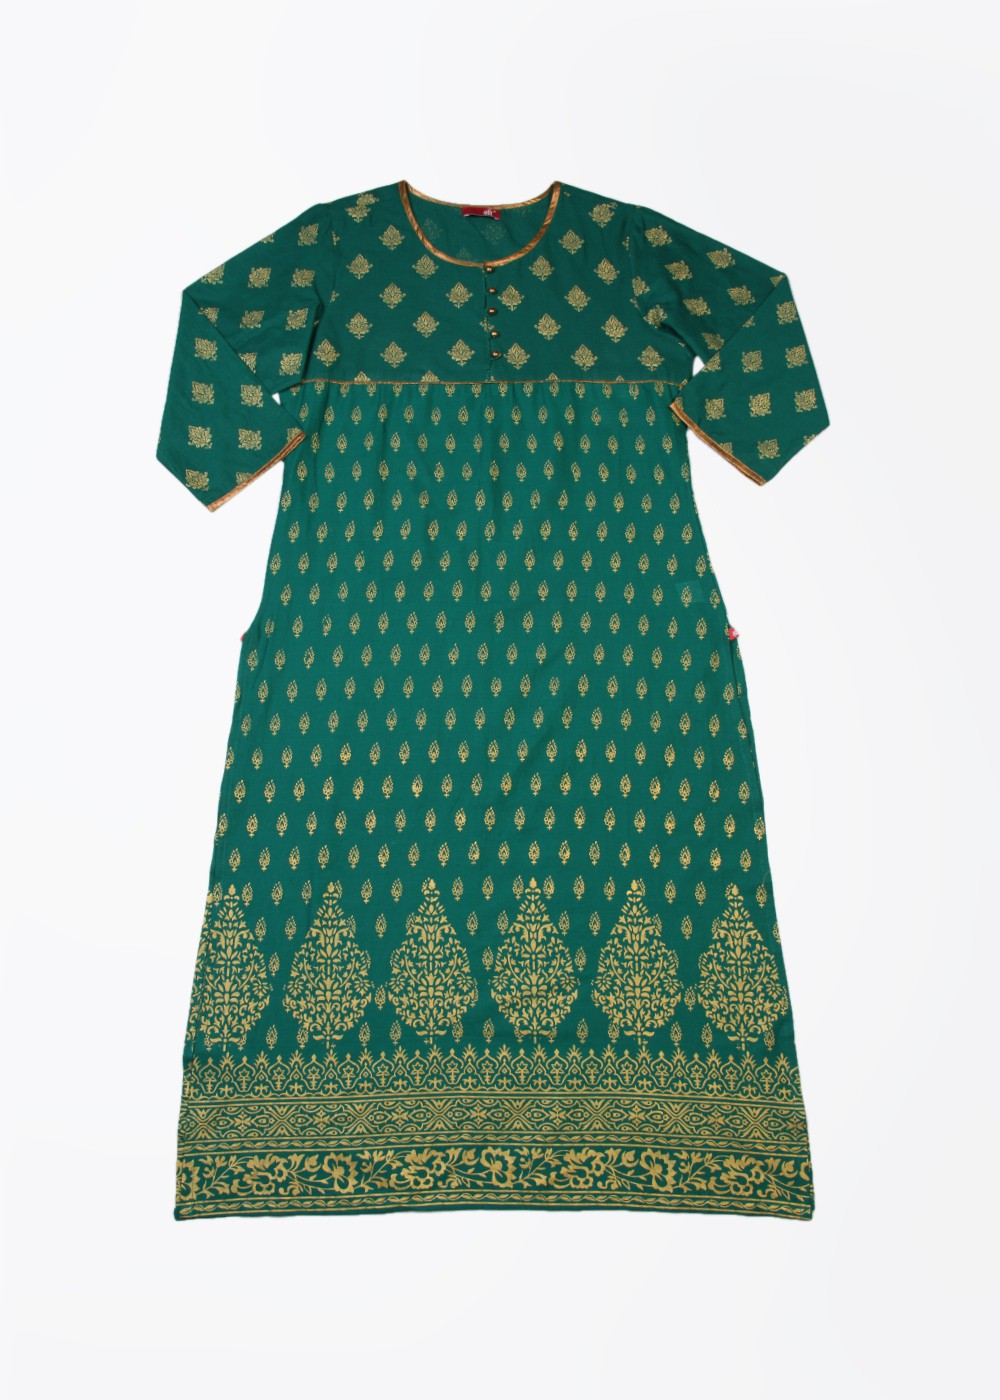 Flipkart - Tops, Kurtas & more Minimum 80% Off